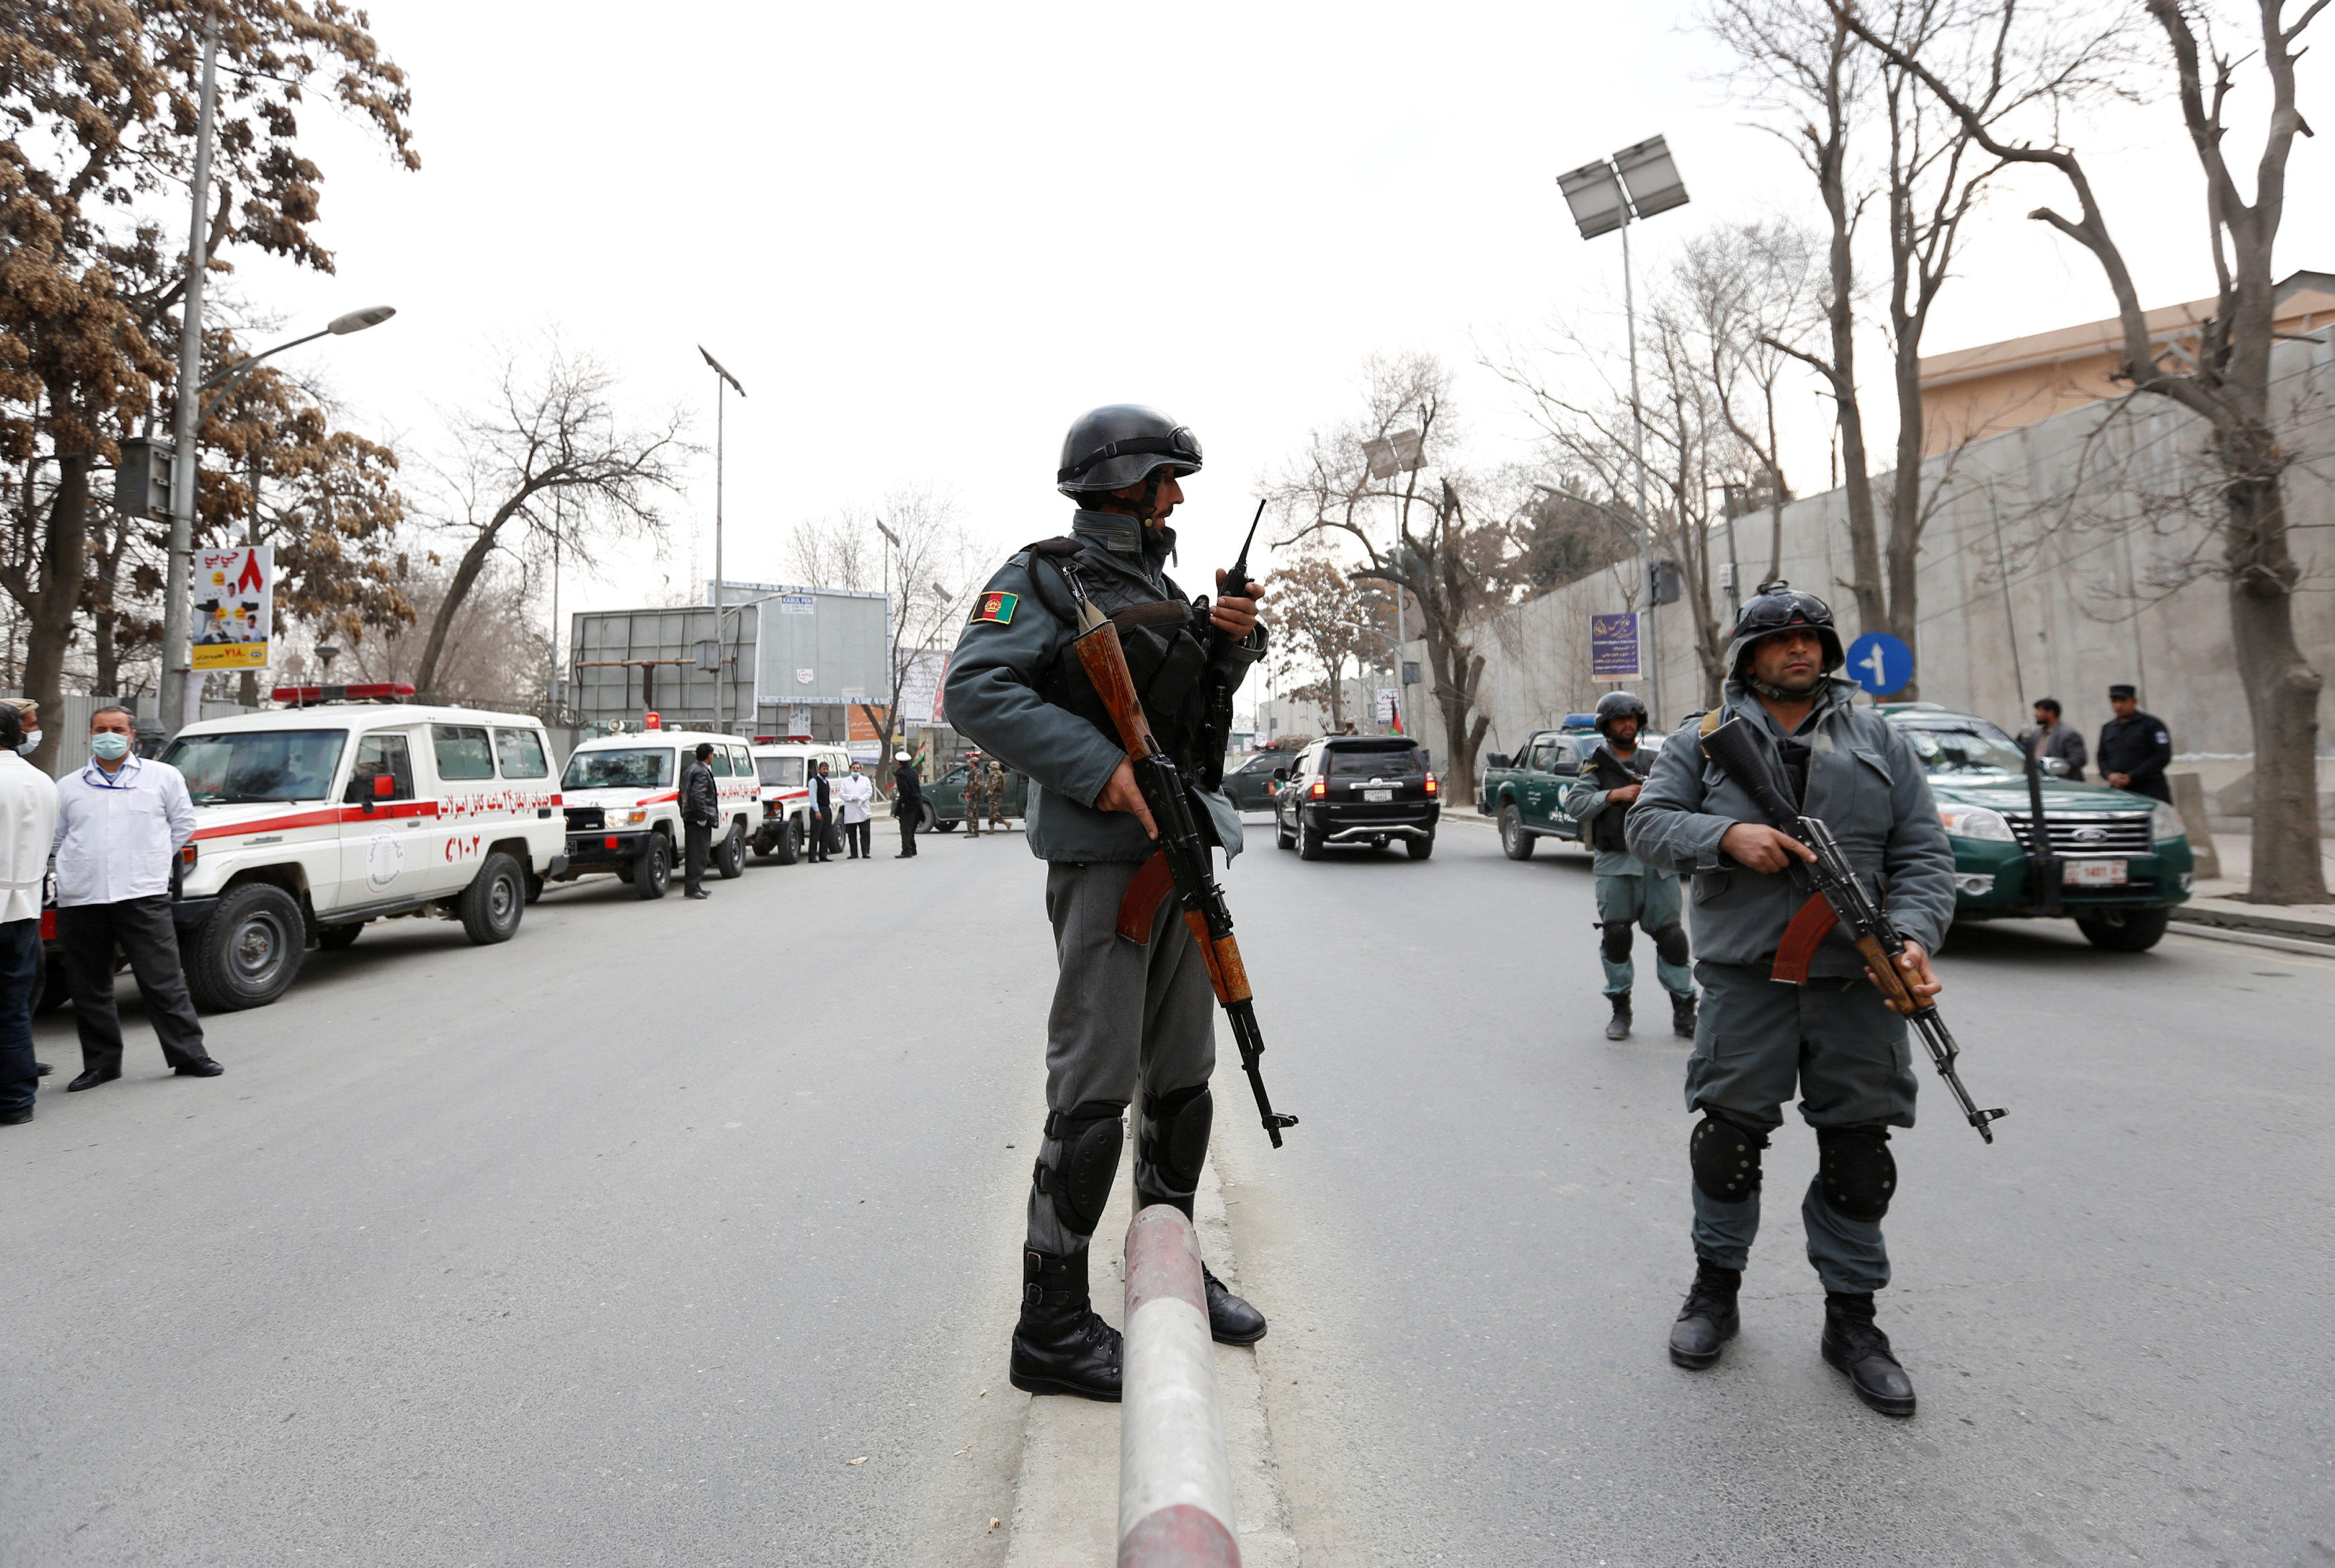 Gunmen attack military hospital near U.S. Embassy in Kabul - CBS News